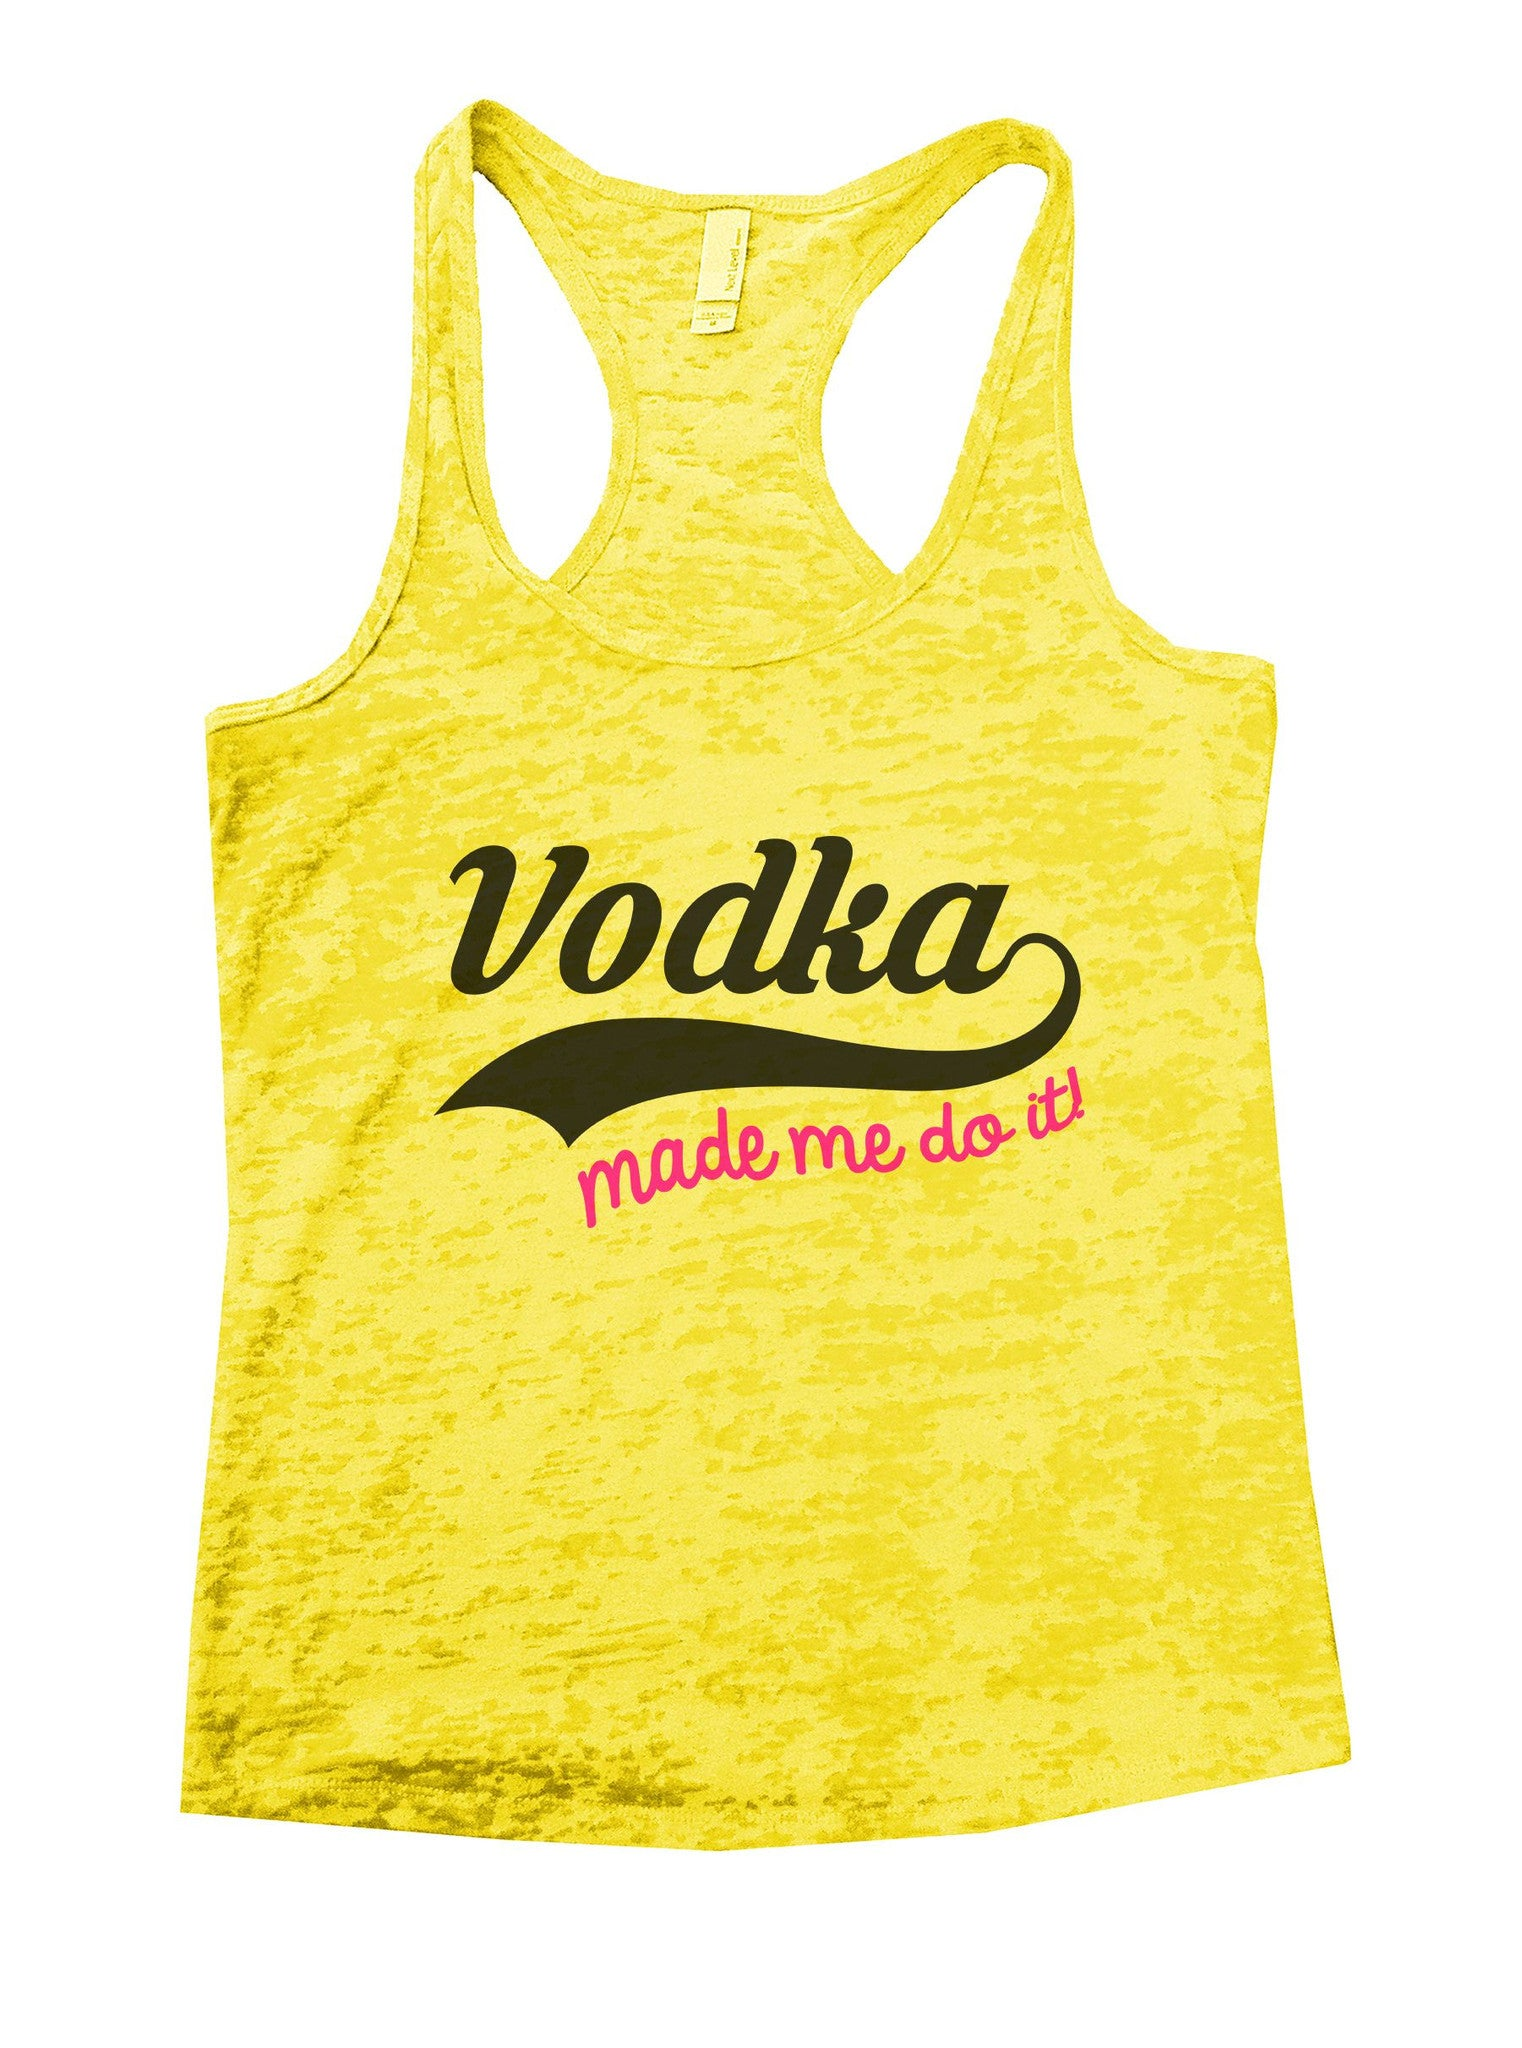 Vodka Made Me Do It! Burnout Tank Top By BurnoutTankTops.com - 1083 - Funny Shirts Tank Tops Burnouts and Triblends  - 7